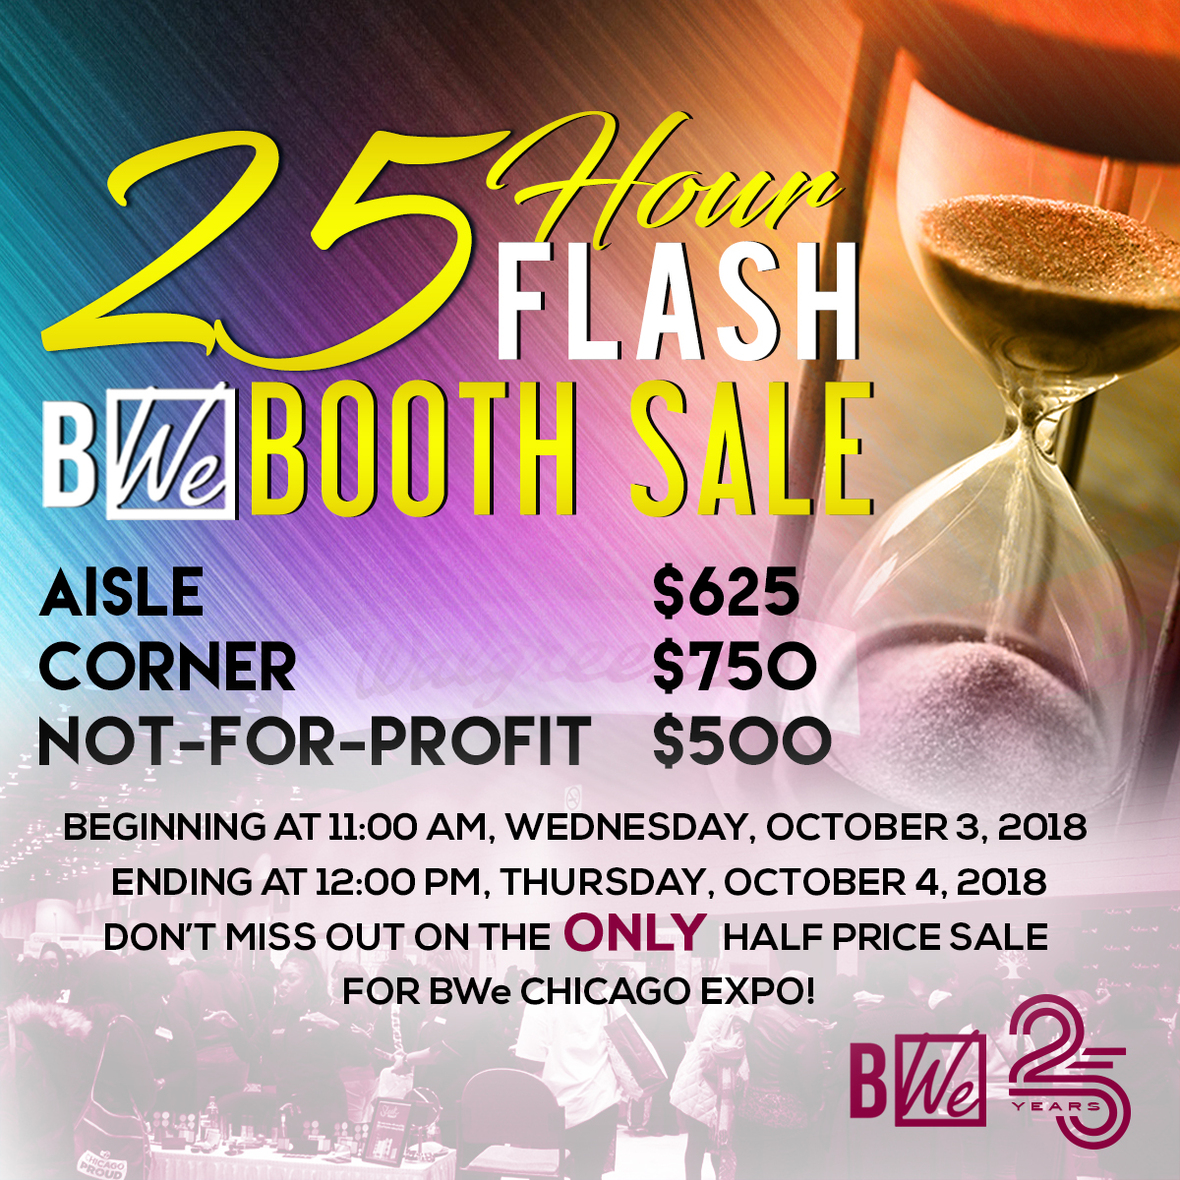 6e277579079b2 The Black Women s Expo Chicago 25 Hour Flash Booth Sale!